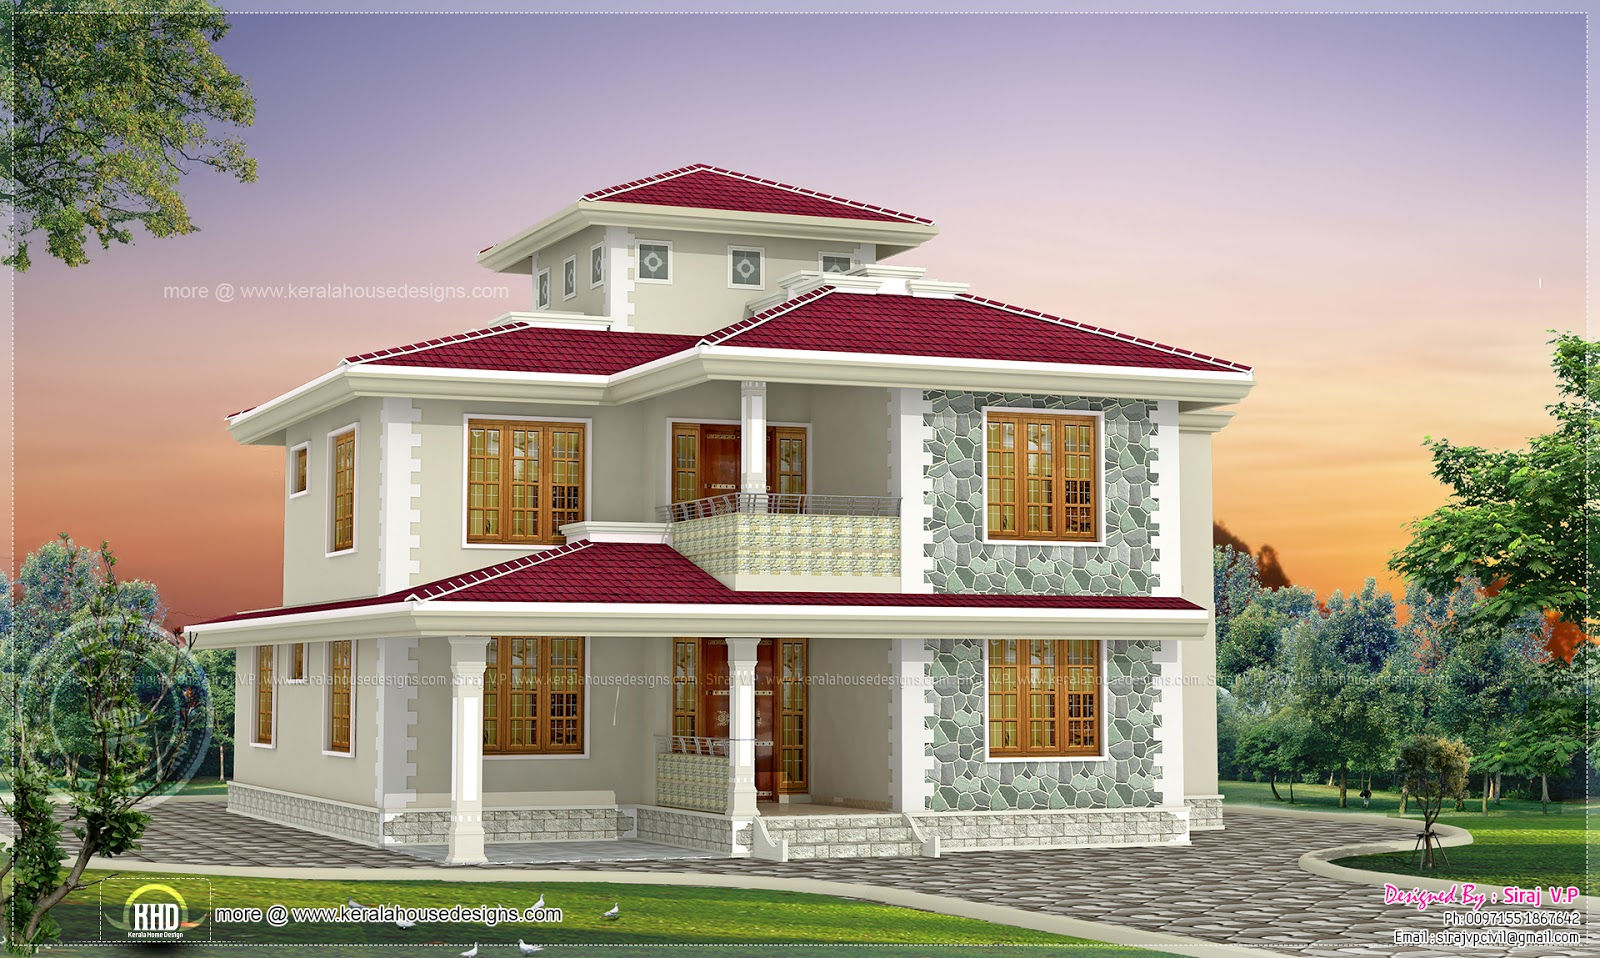 4 bhk kerala style home design kerala home design and for 4 bhk villa interior design